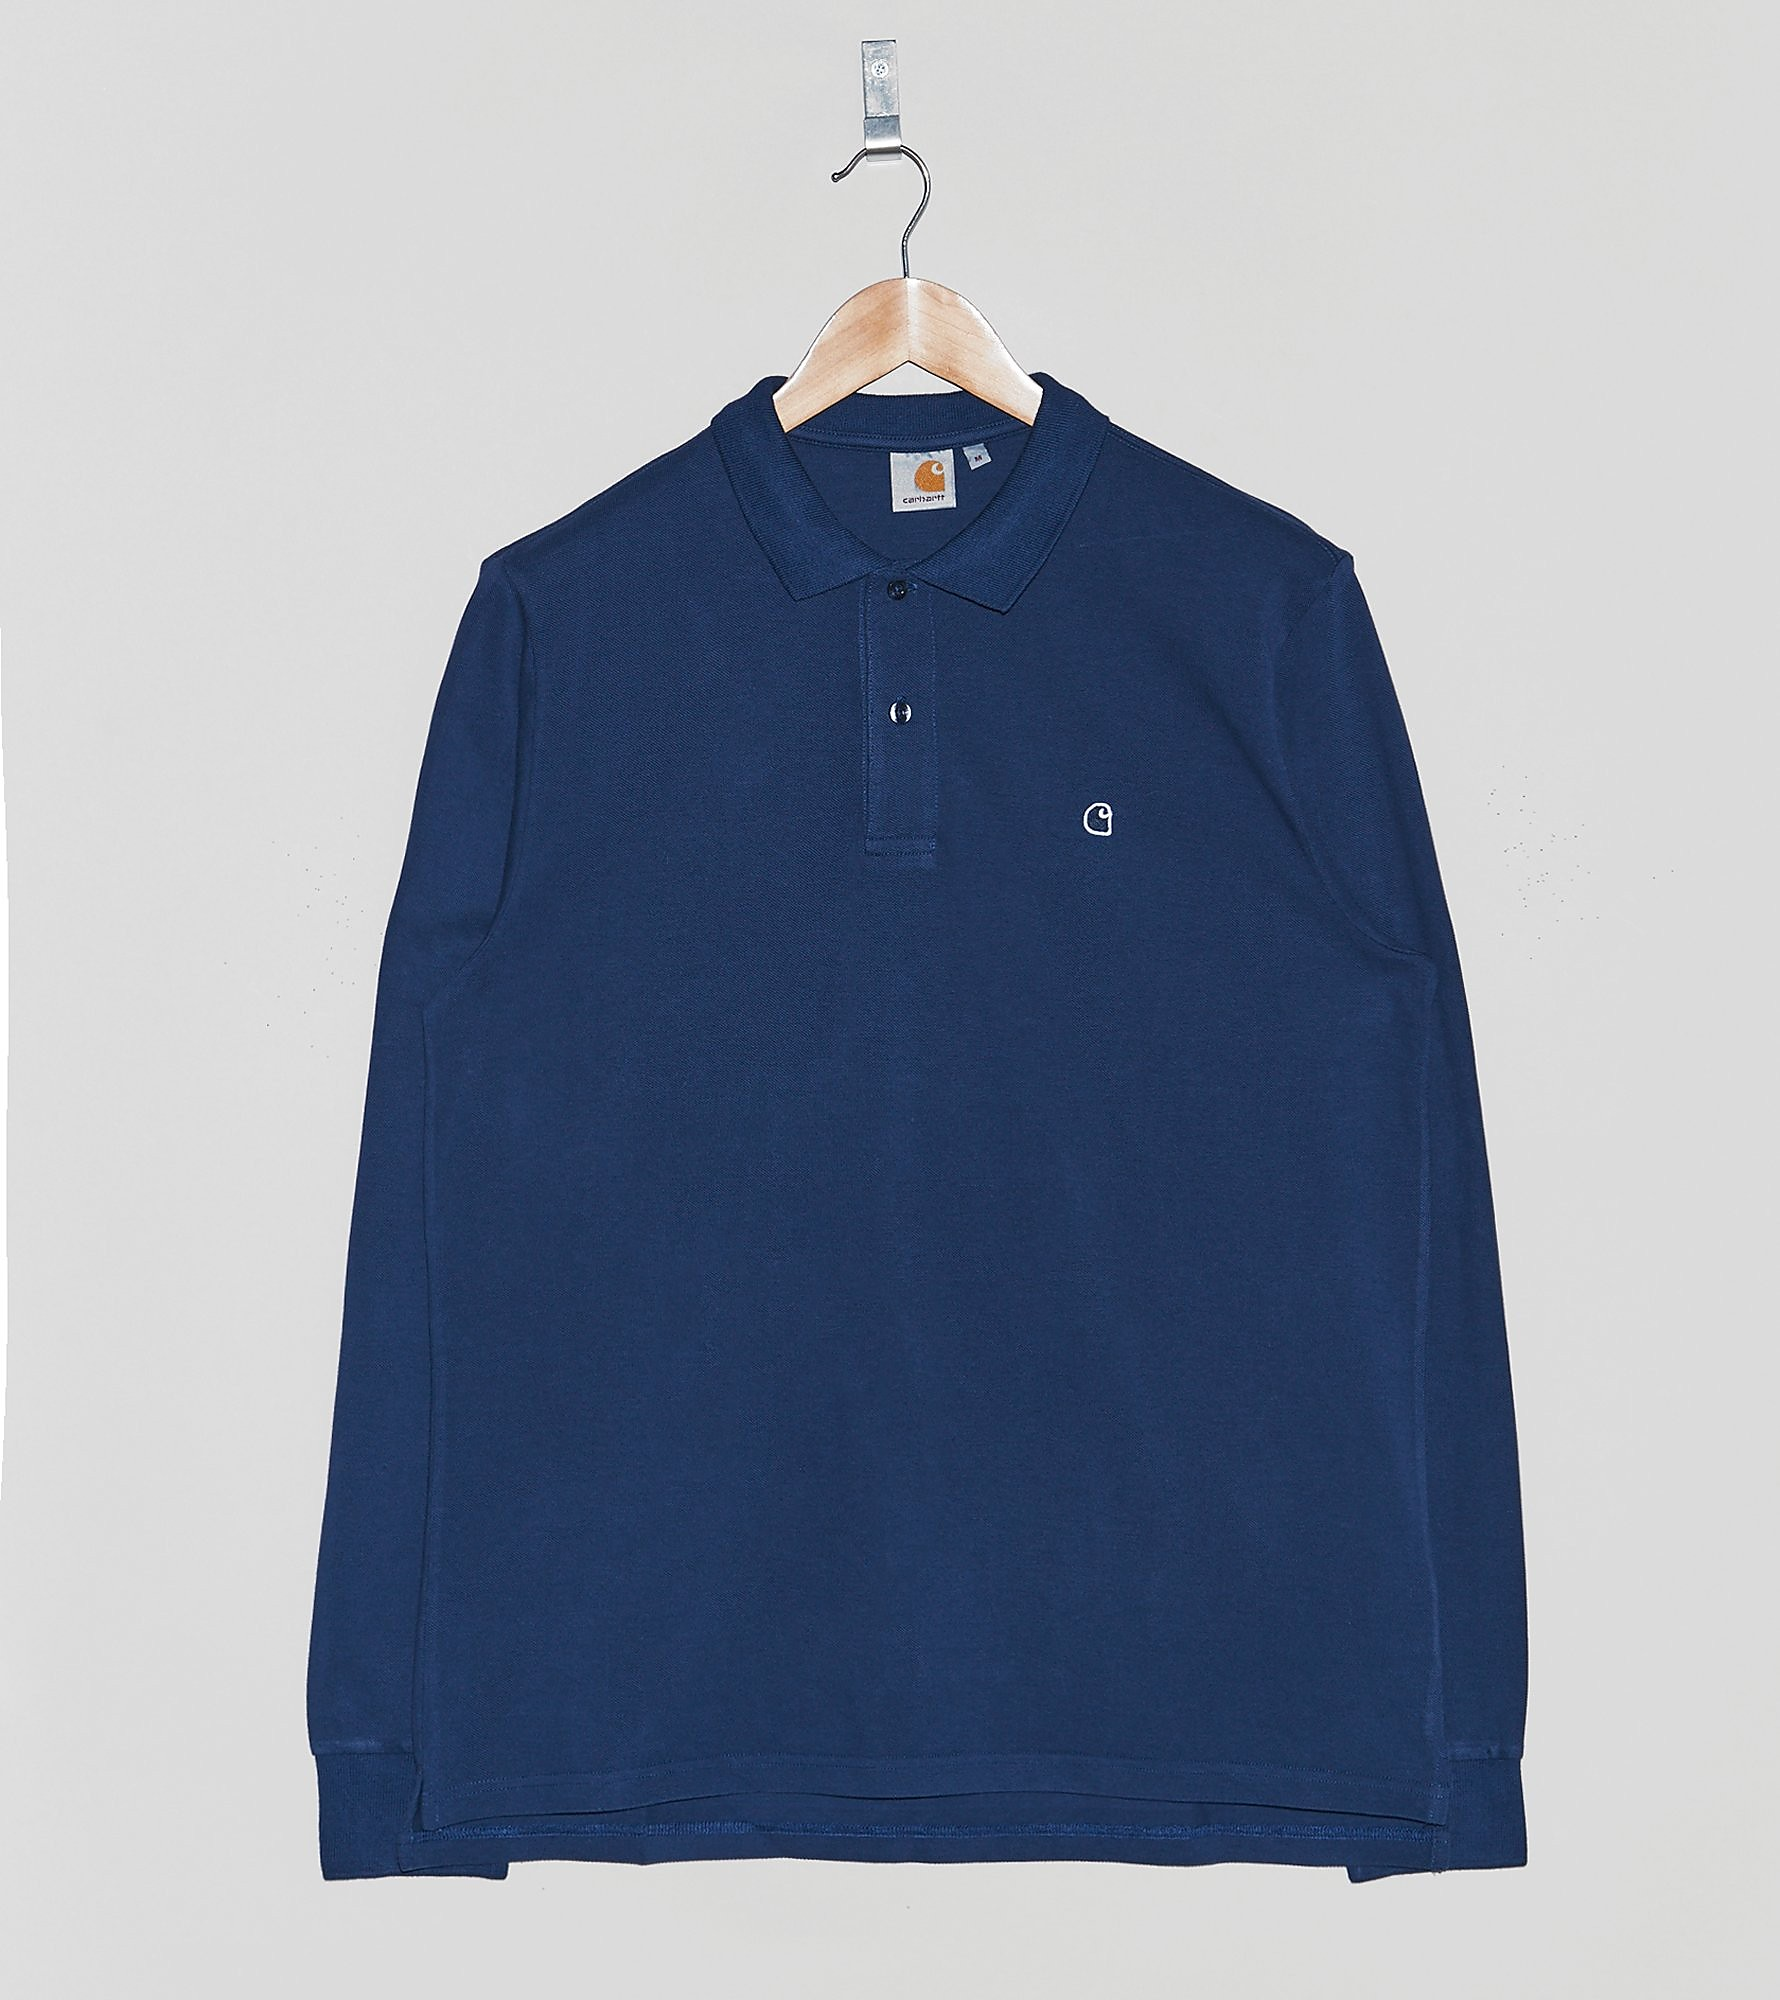 Carhartt WIP Long-Sleeved Patch Polo Shirt